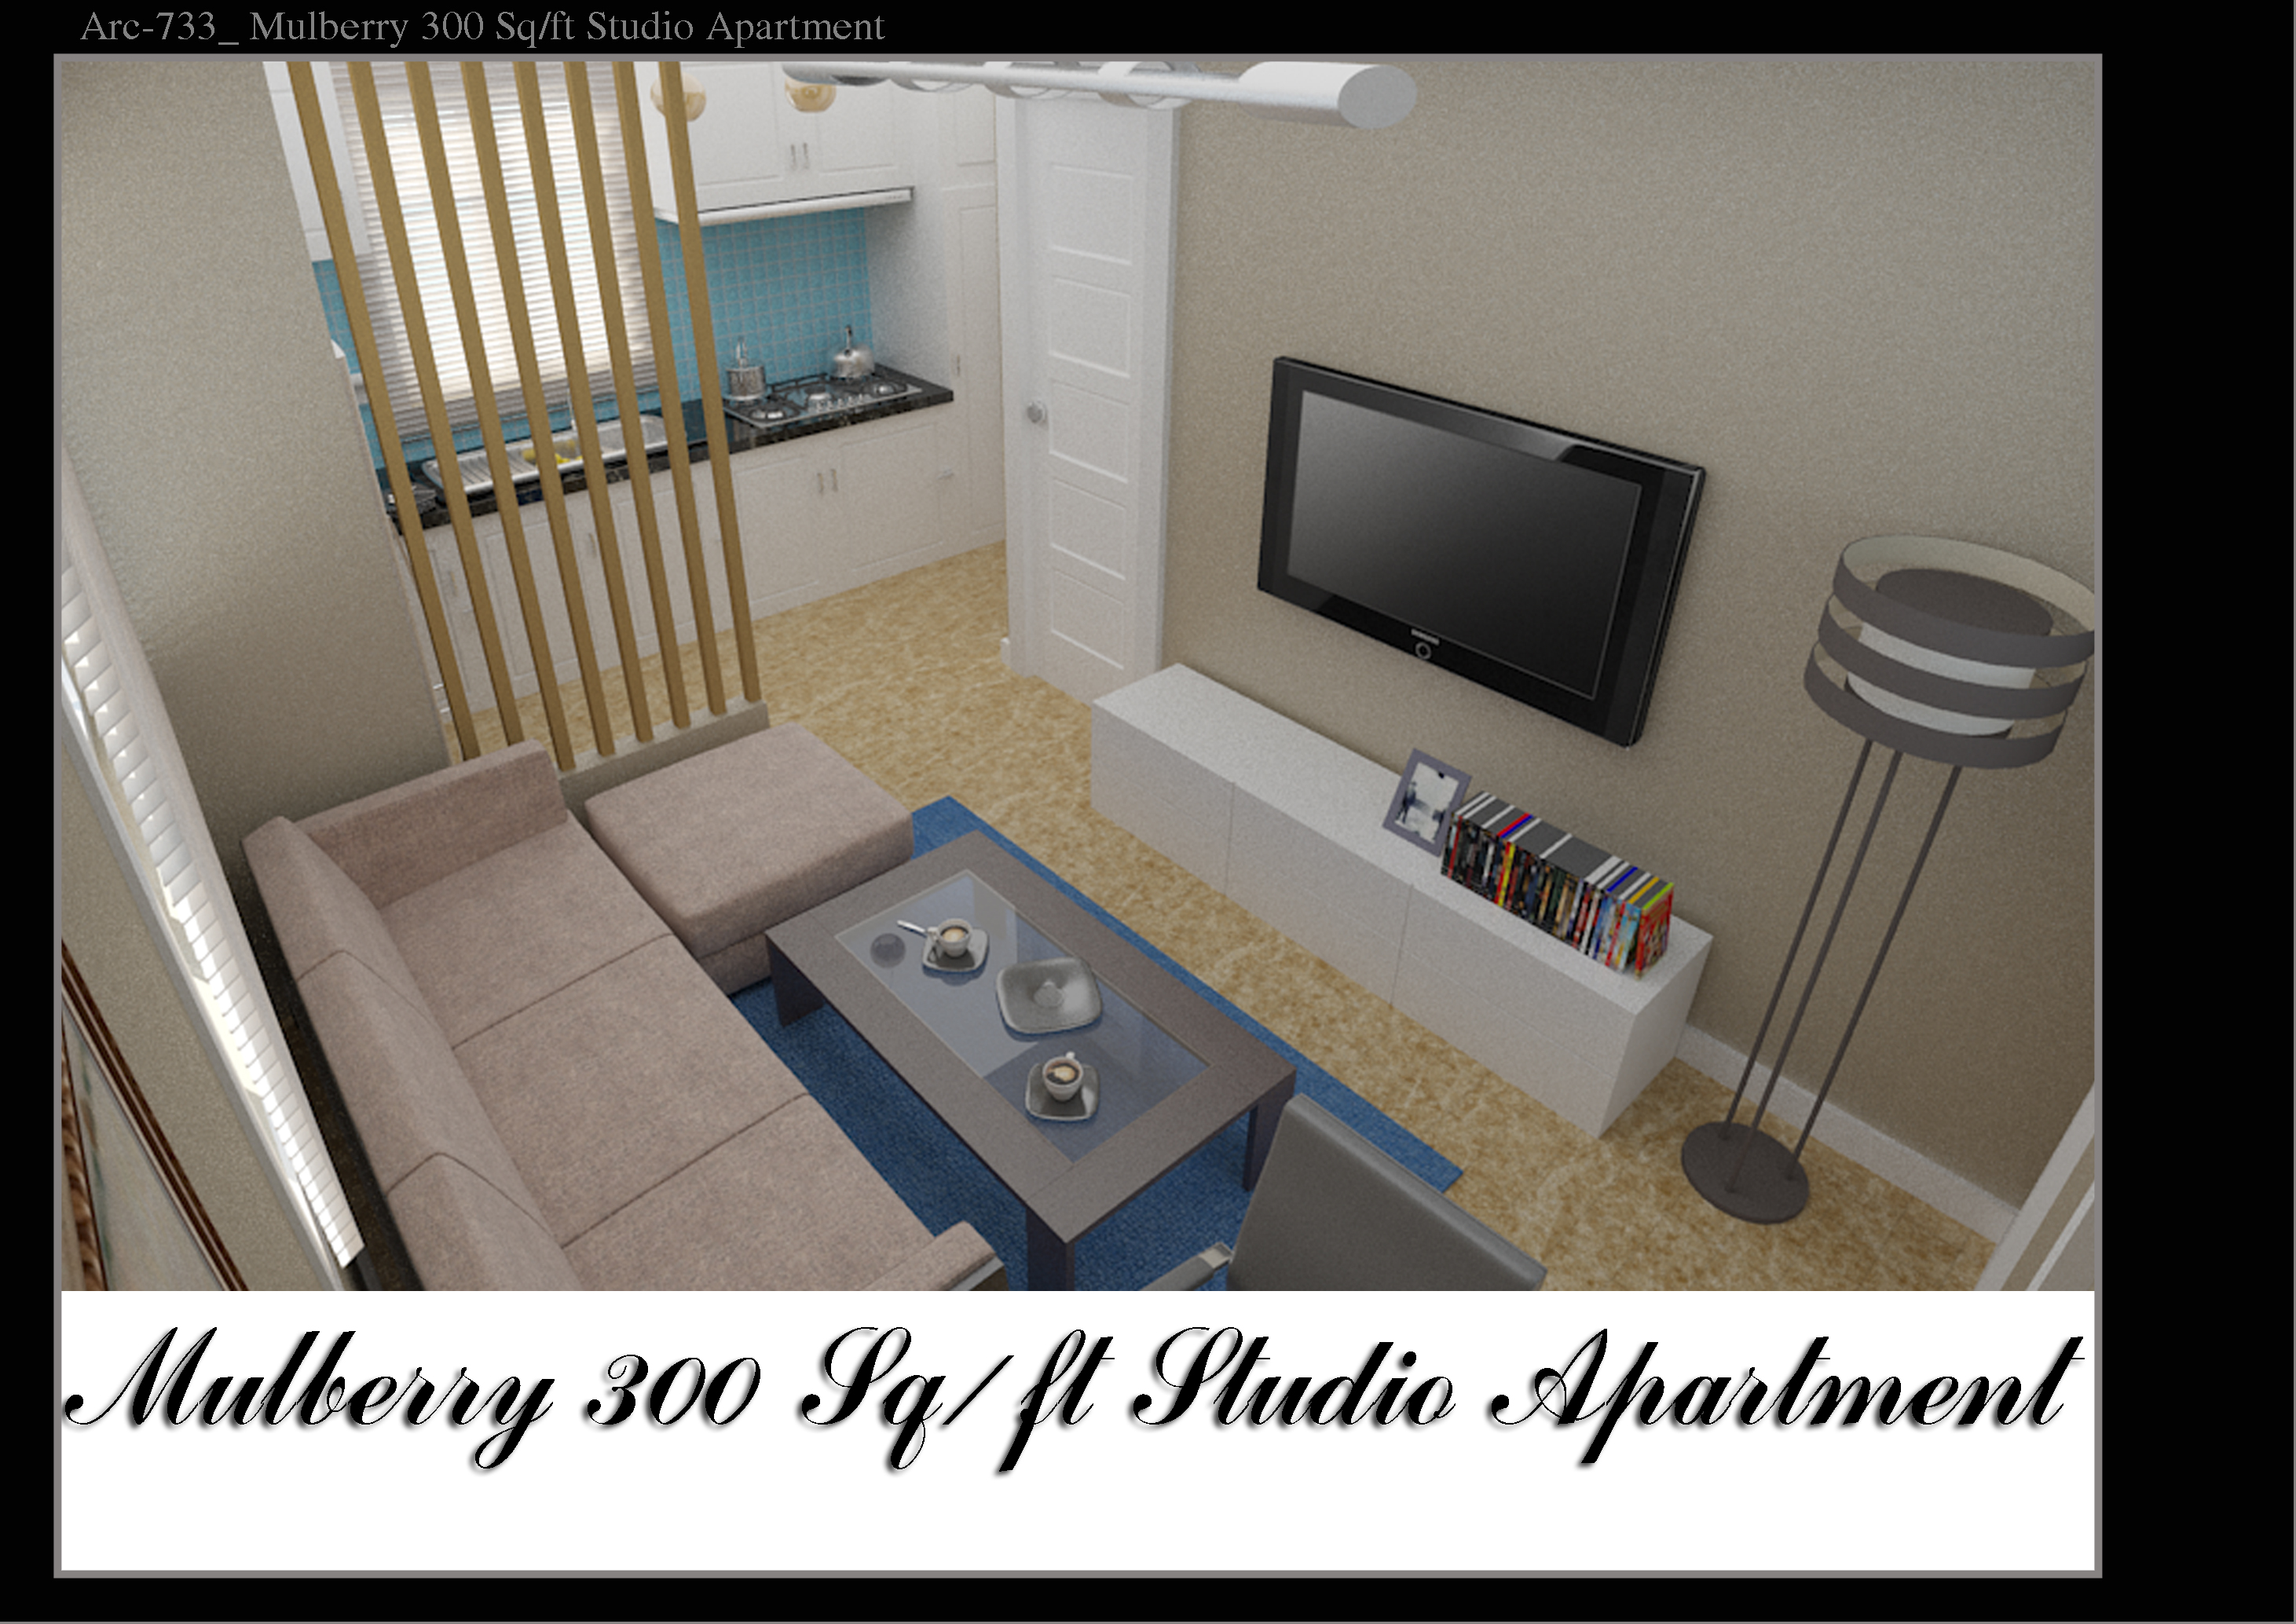 28 300 sq ft apartment mary lee s life in 300 300 square feet apartment